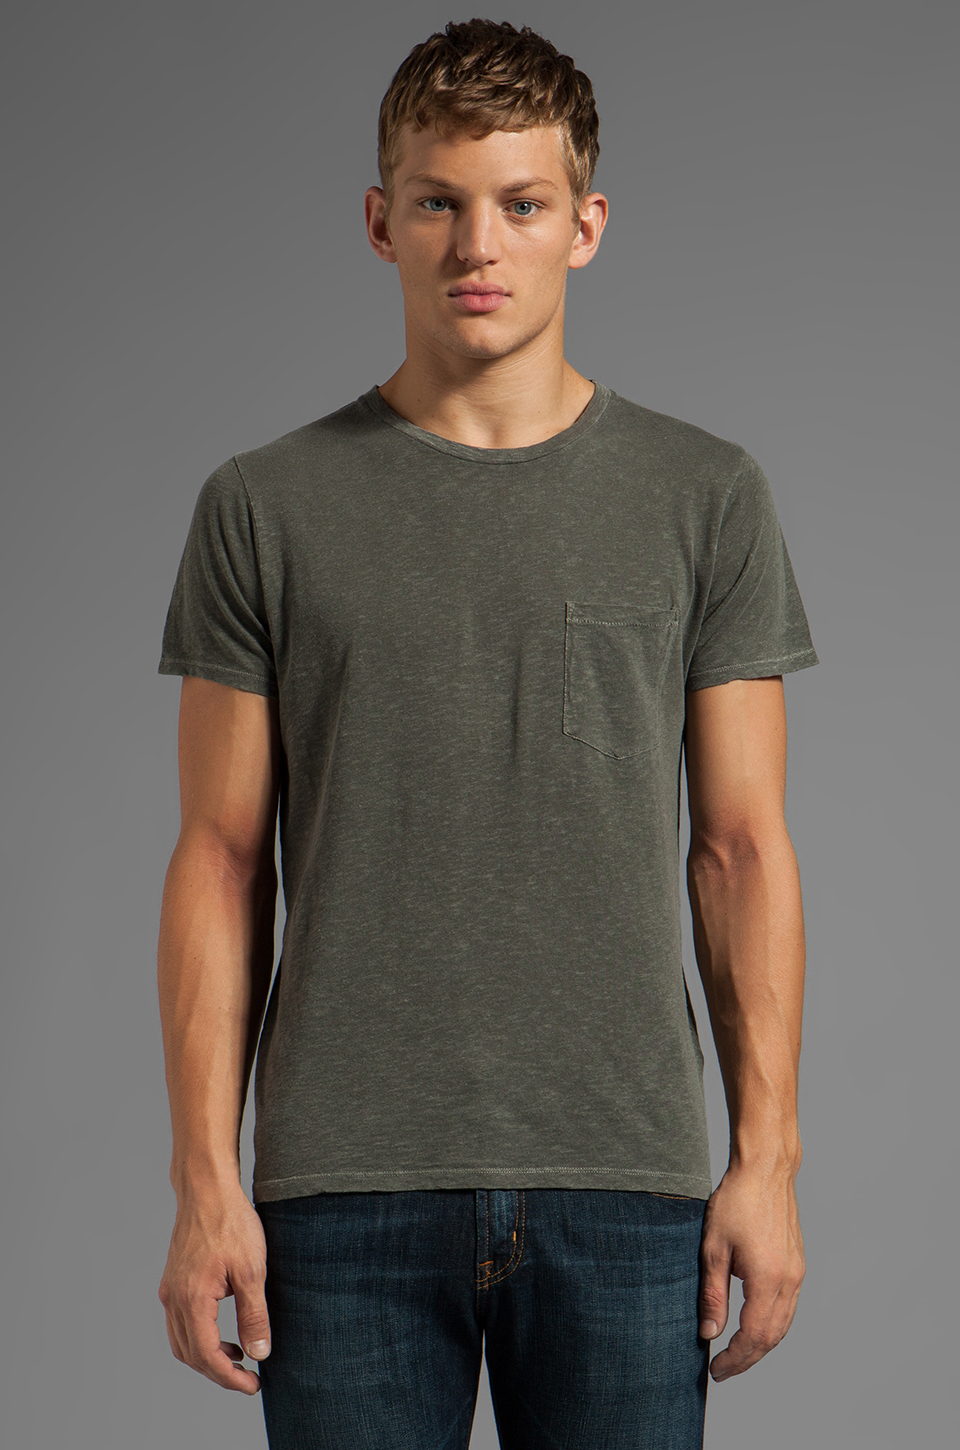 ag adriano goldschmied back seam pocket tee in green for men pigment diesel lyst. Black Bedroom Furniture Sets. Home Design Ideas